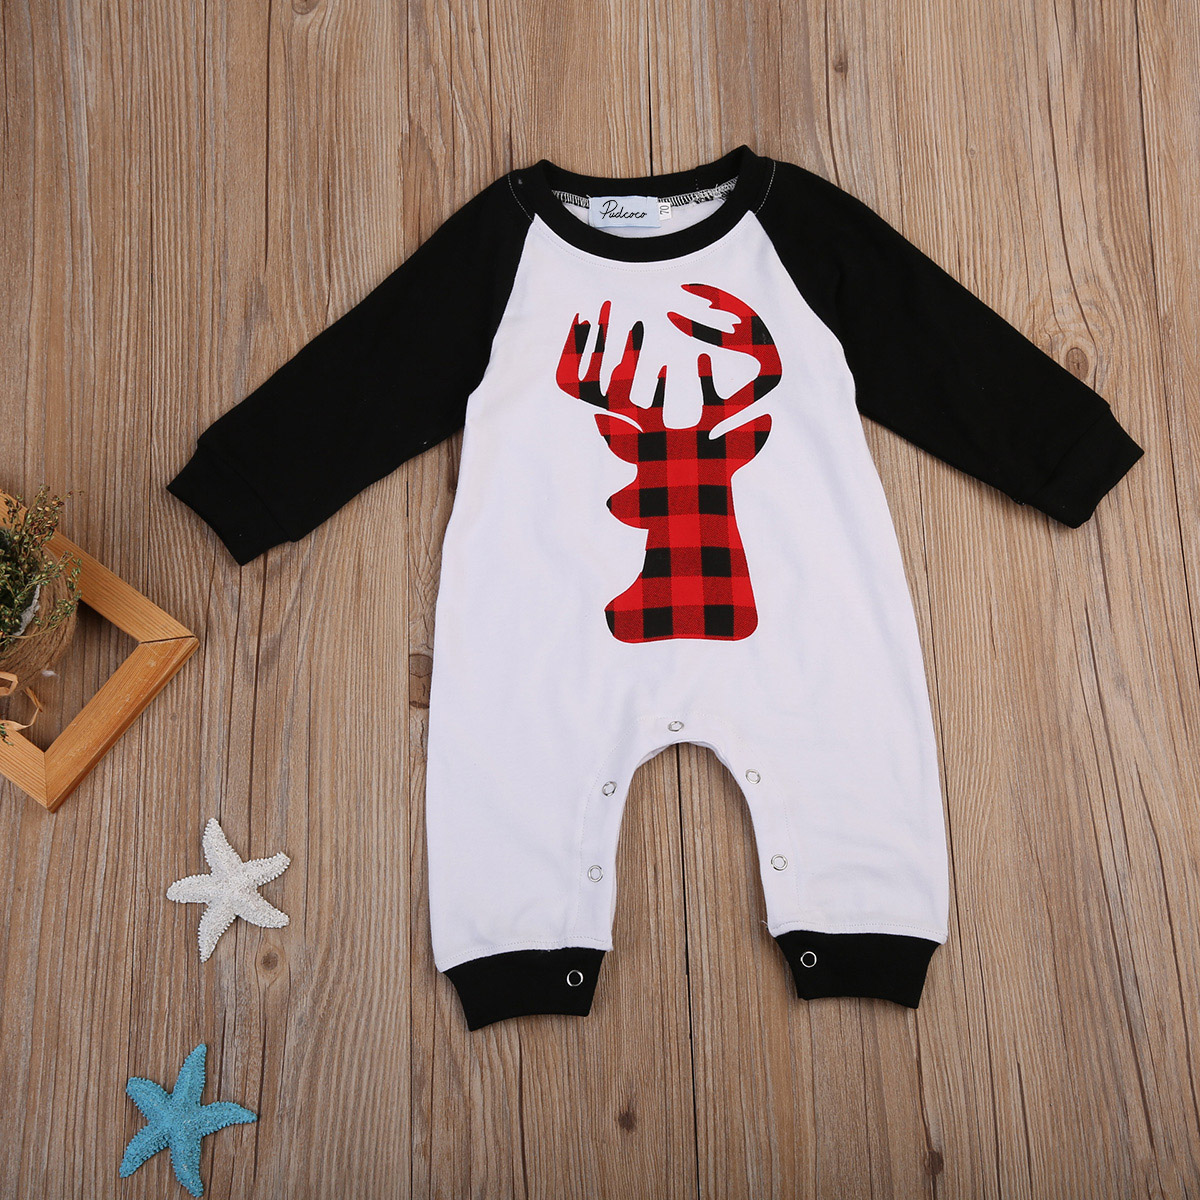 Pudcoco Cotton Newborn Baby Boys Girls Long Sleeve Deer Romper Jumpsuit Playsuit One-Pieces Outfits Clothes